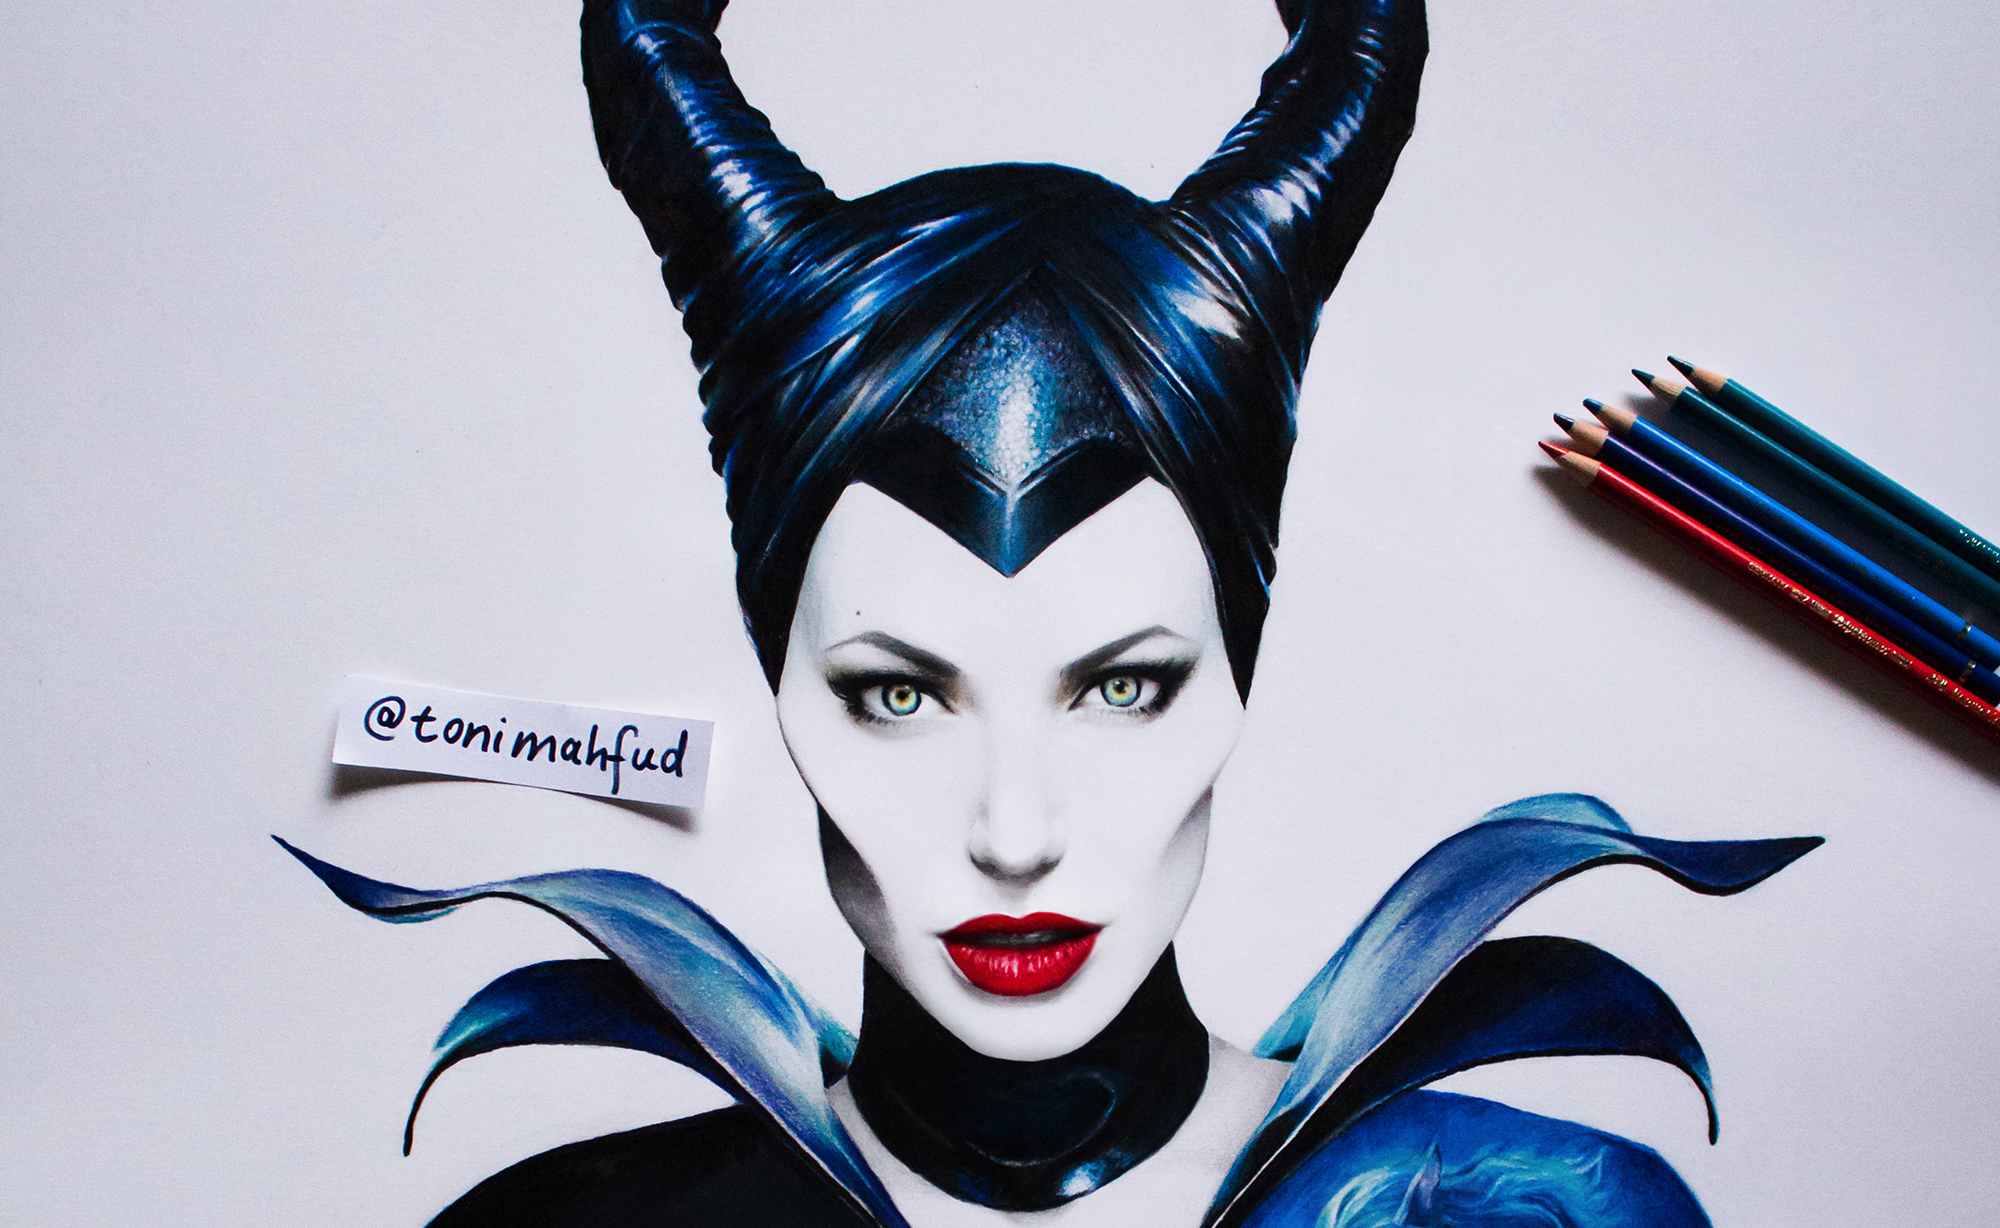 MALEFICENT_ARTWORK_DRAWING_ANGELINA_JOLIE_TONI_MAHFUD_WEB_02